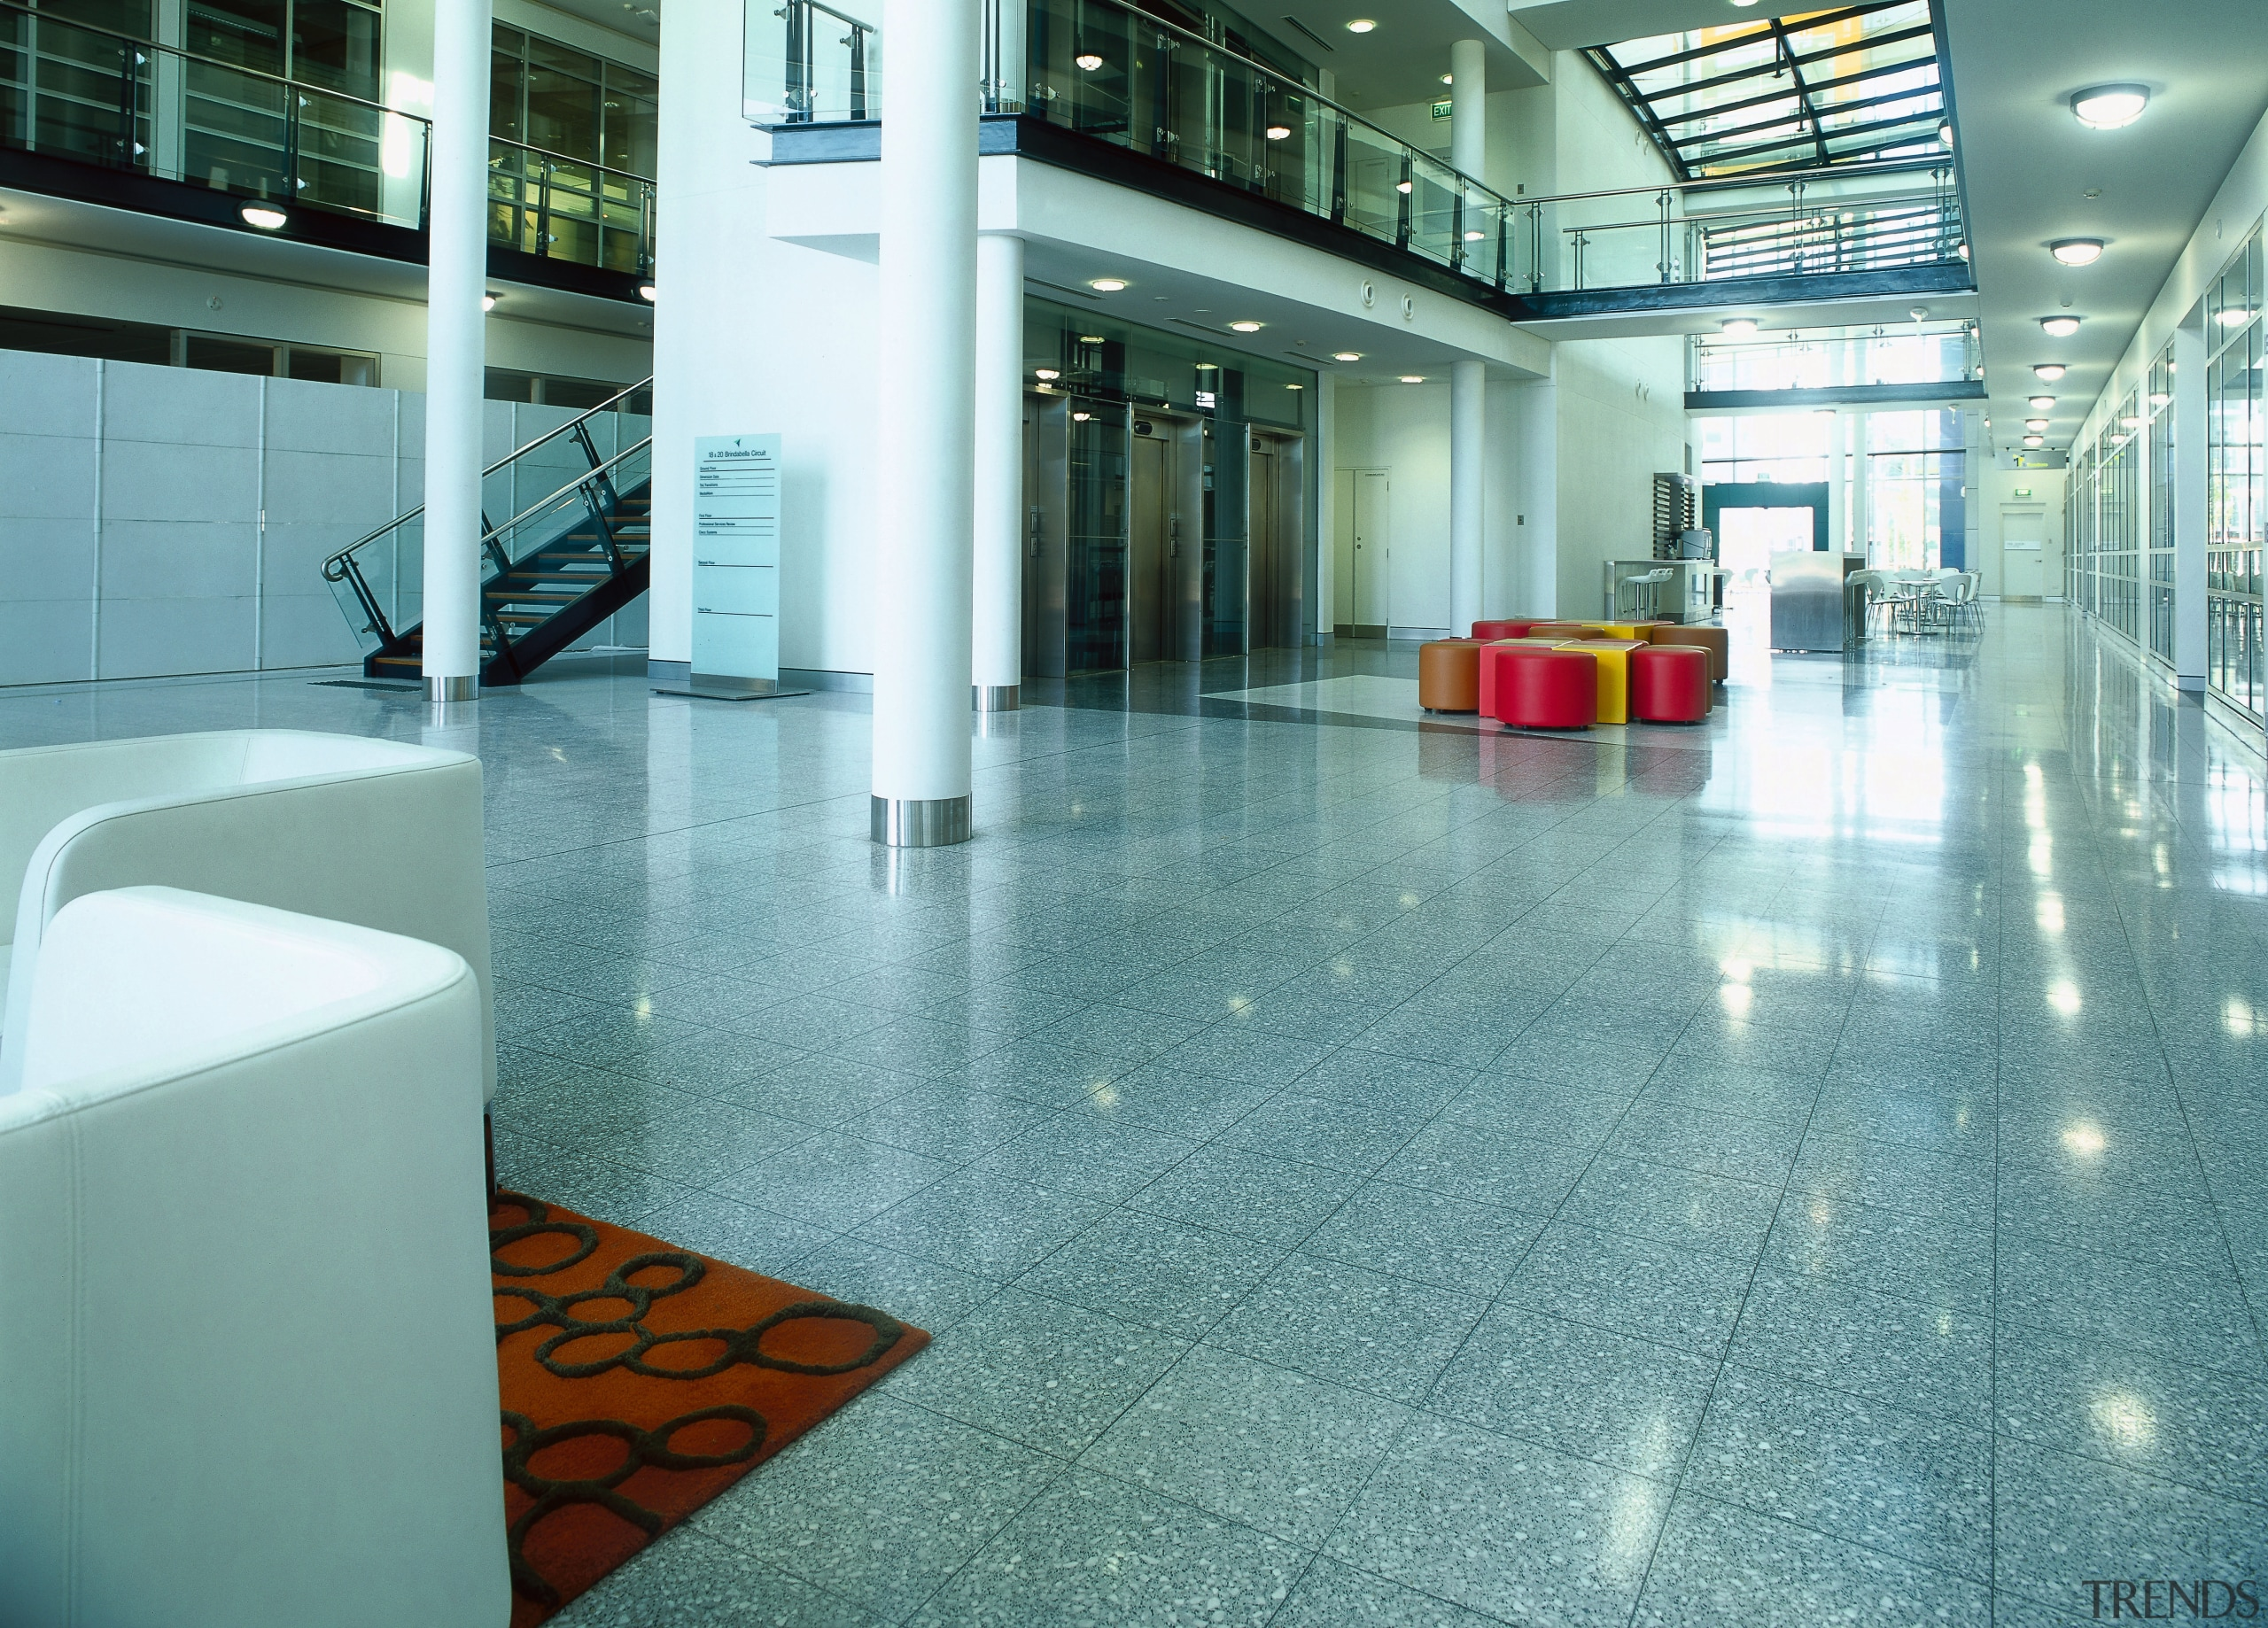 view of the terazzo tiles - view of architecture, floor, flooring, glass, interior design, lobby, tile, teal, white